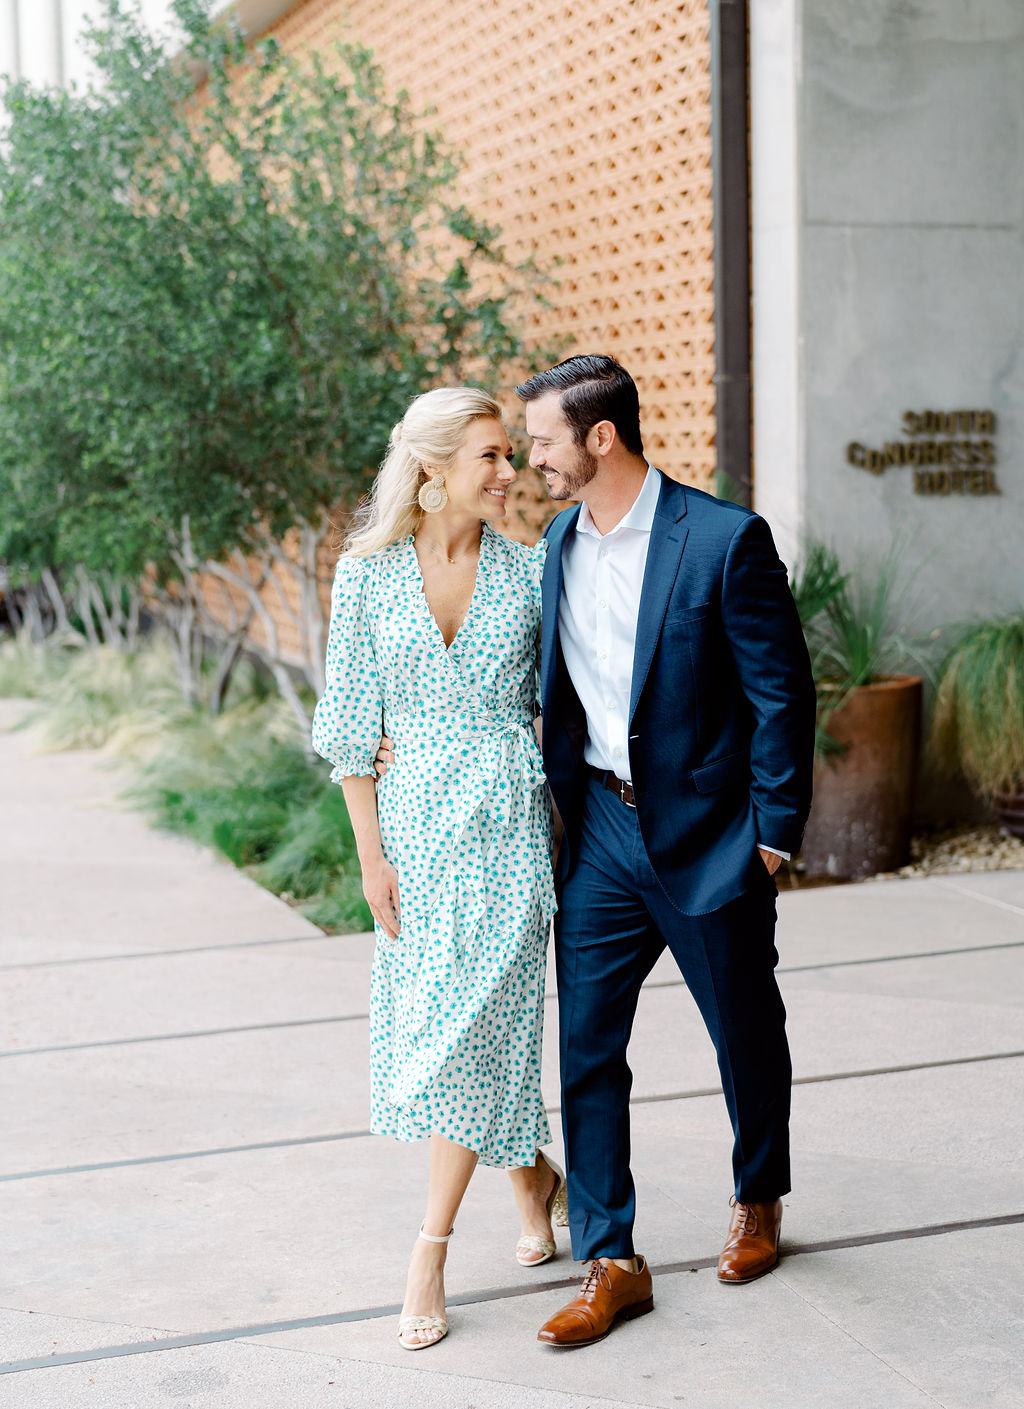 Austin-Elopement-Intimate-Wedding-Photographer-South-Congress-Hotel-Engagement-Session-19.jpg